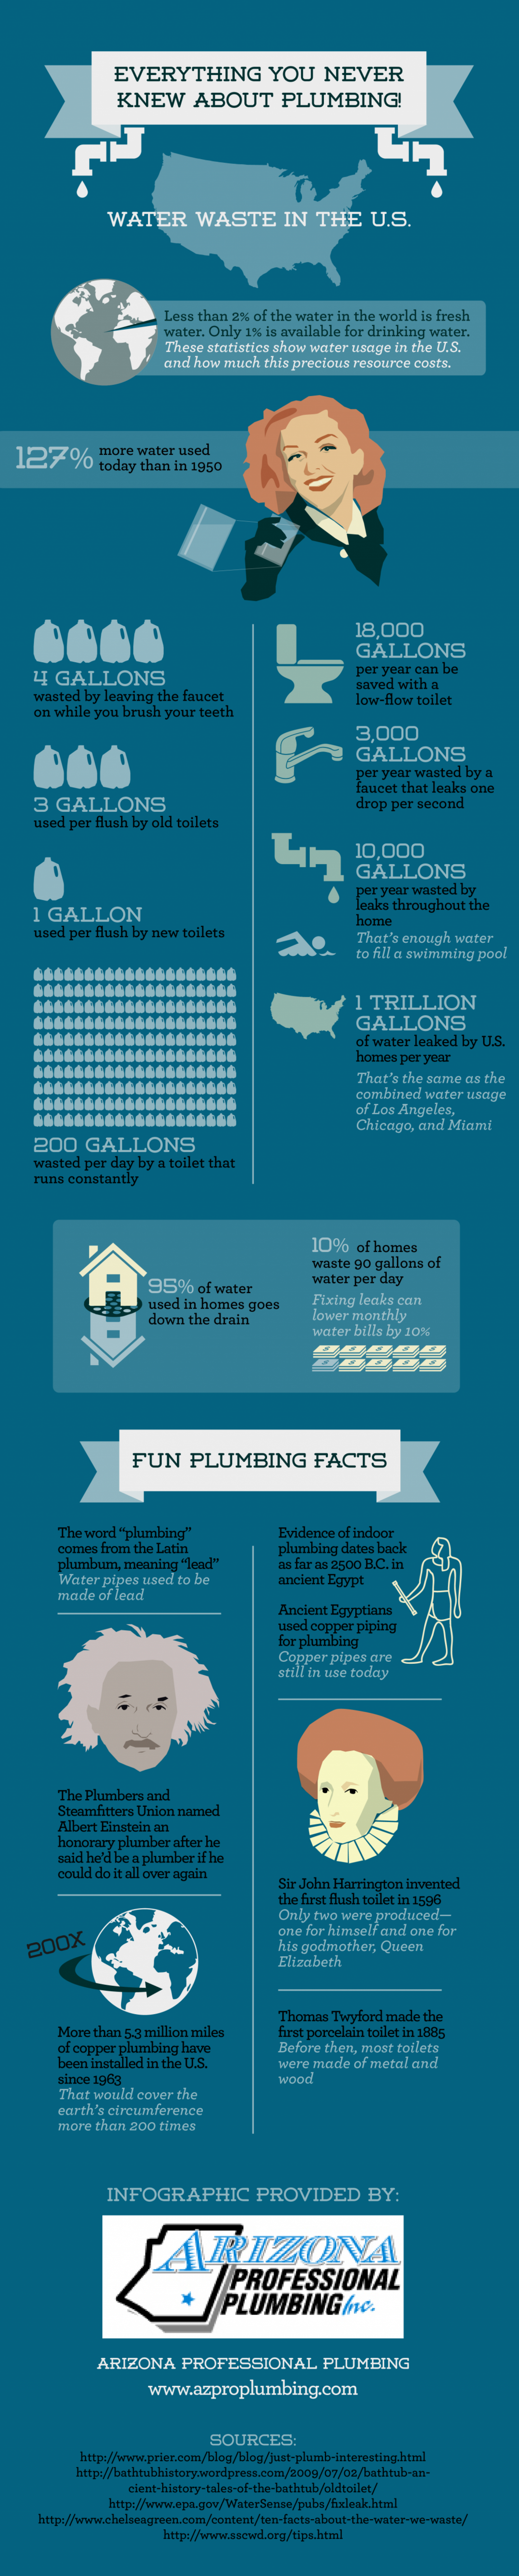 Everything You Never Knew About Plumbing Infographic